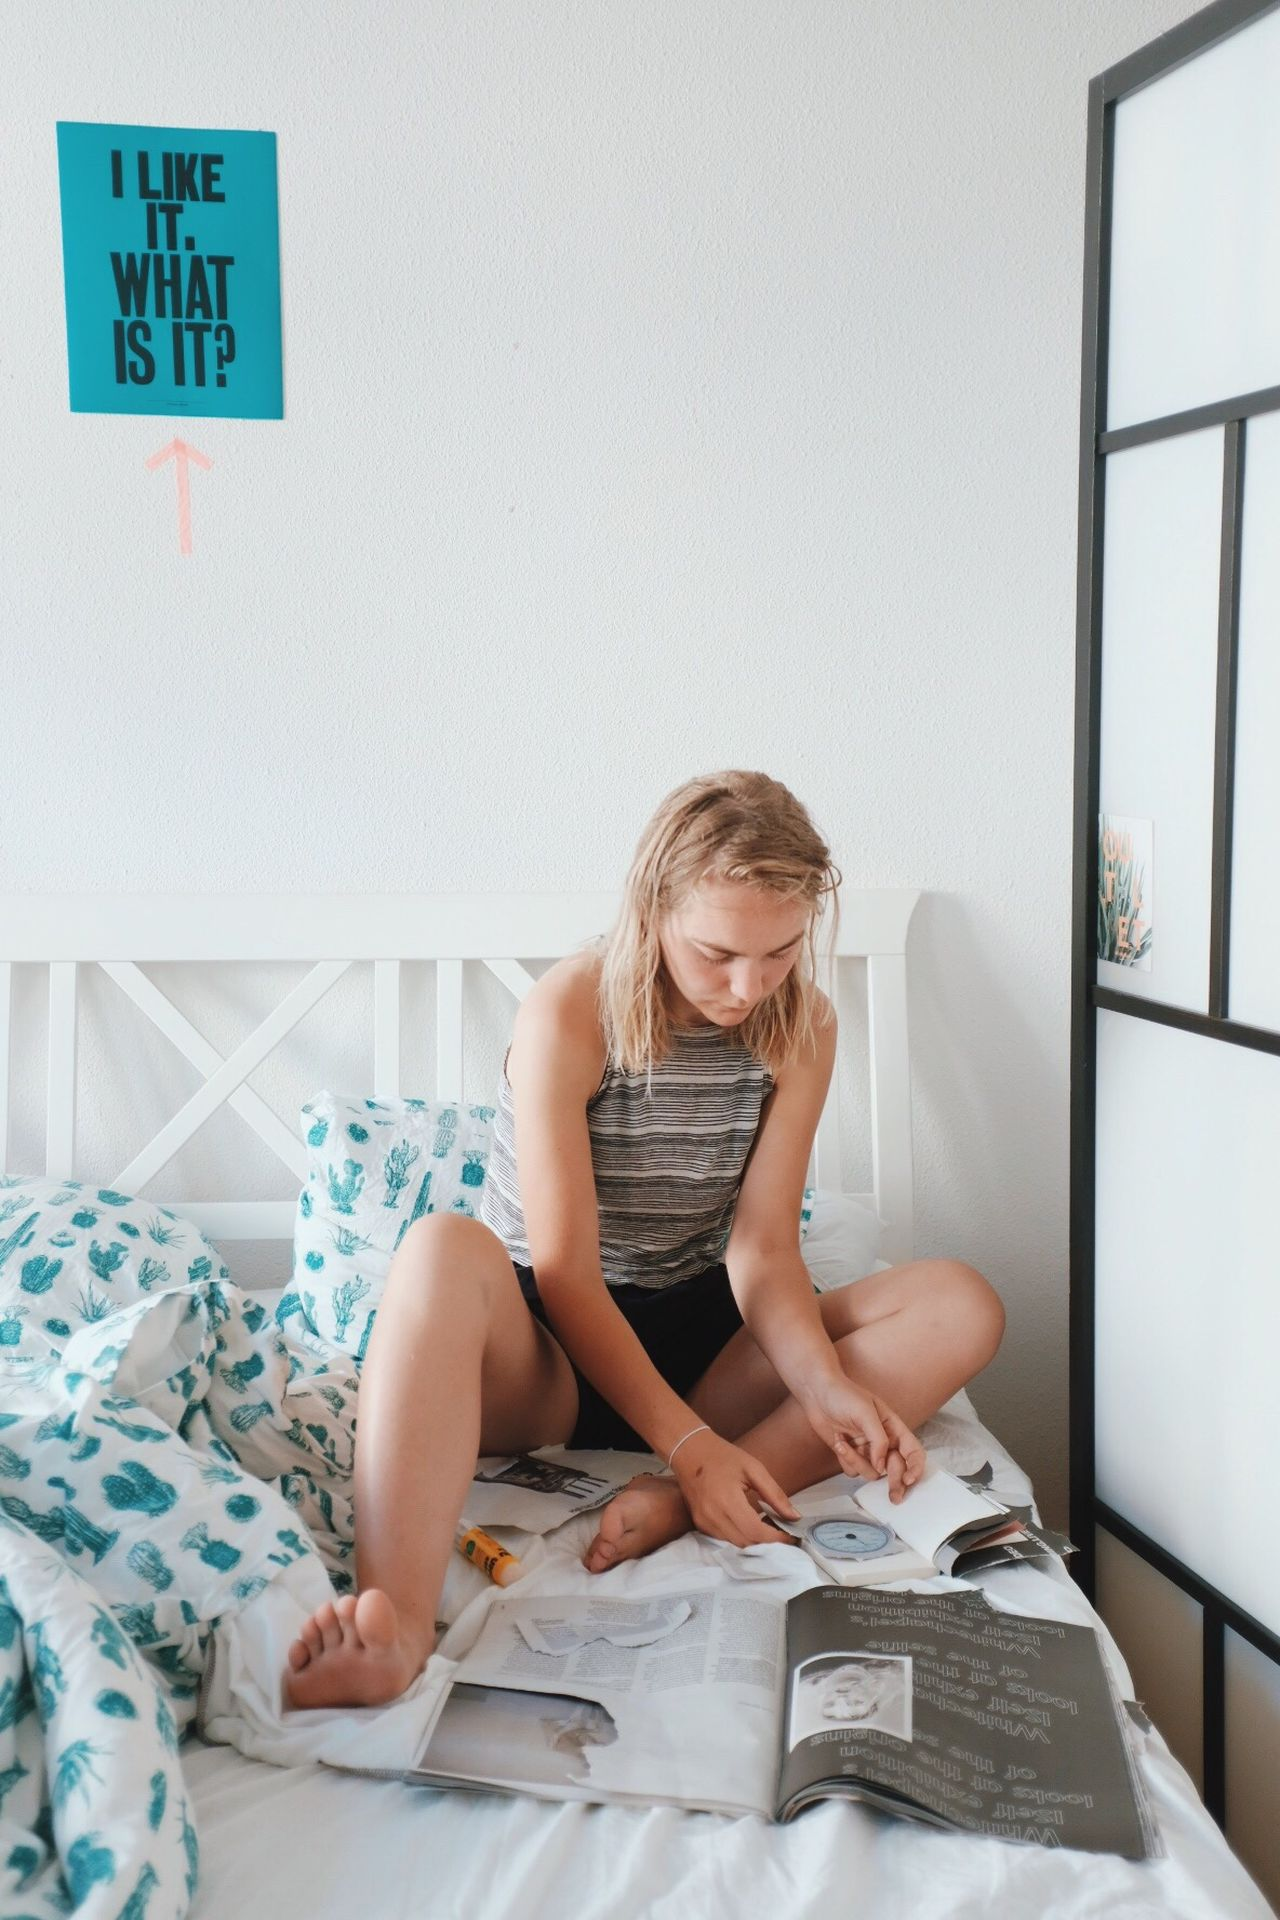 Sitting One Person Blond Hair Indoors  Full Length Bed Day Young Adult People Adult